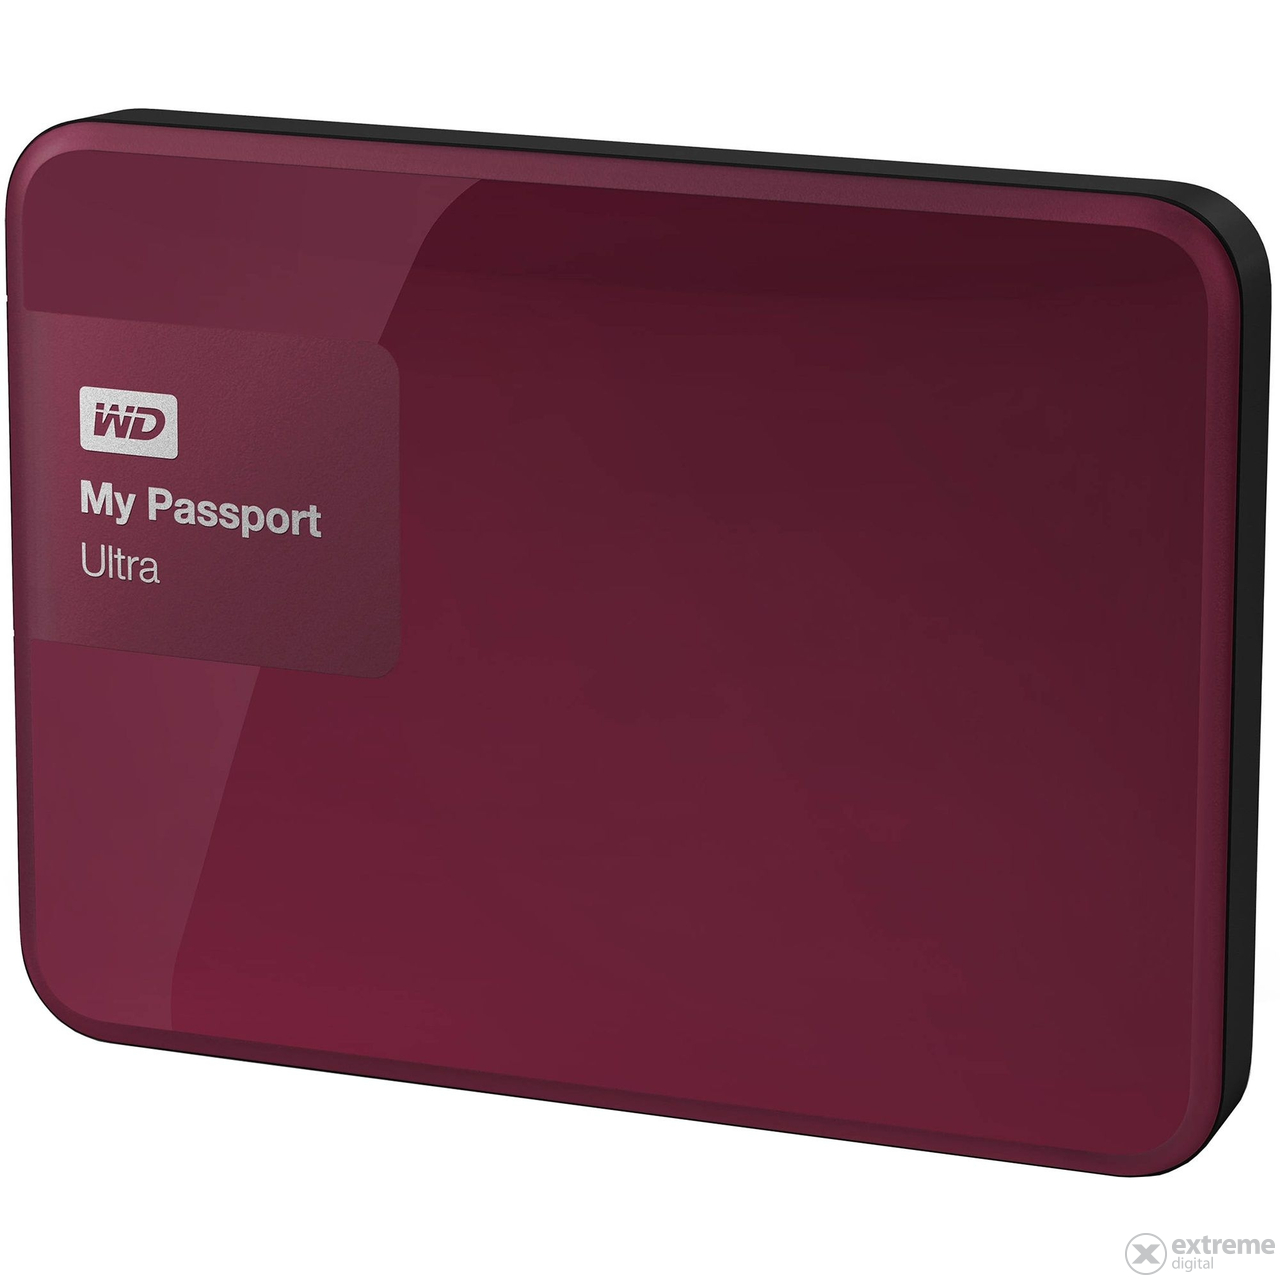 wd-my-passport-ultra-3tb-2-5-kulso_5496e957.jpg